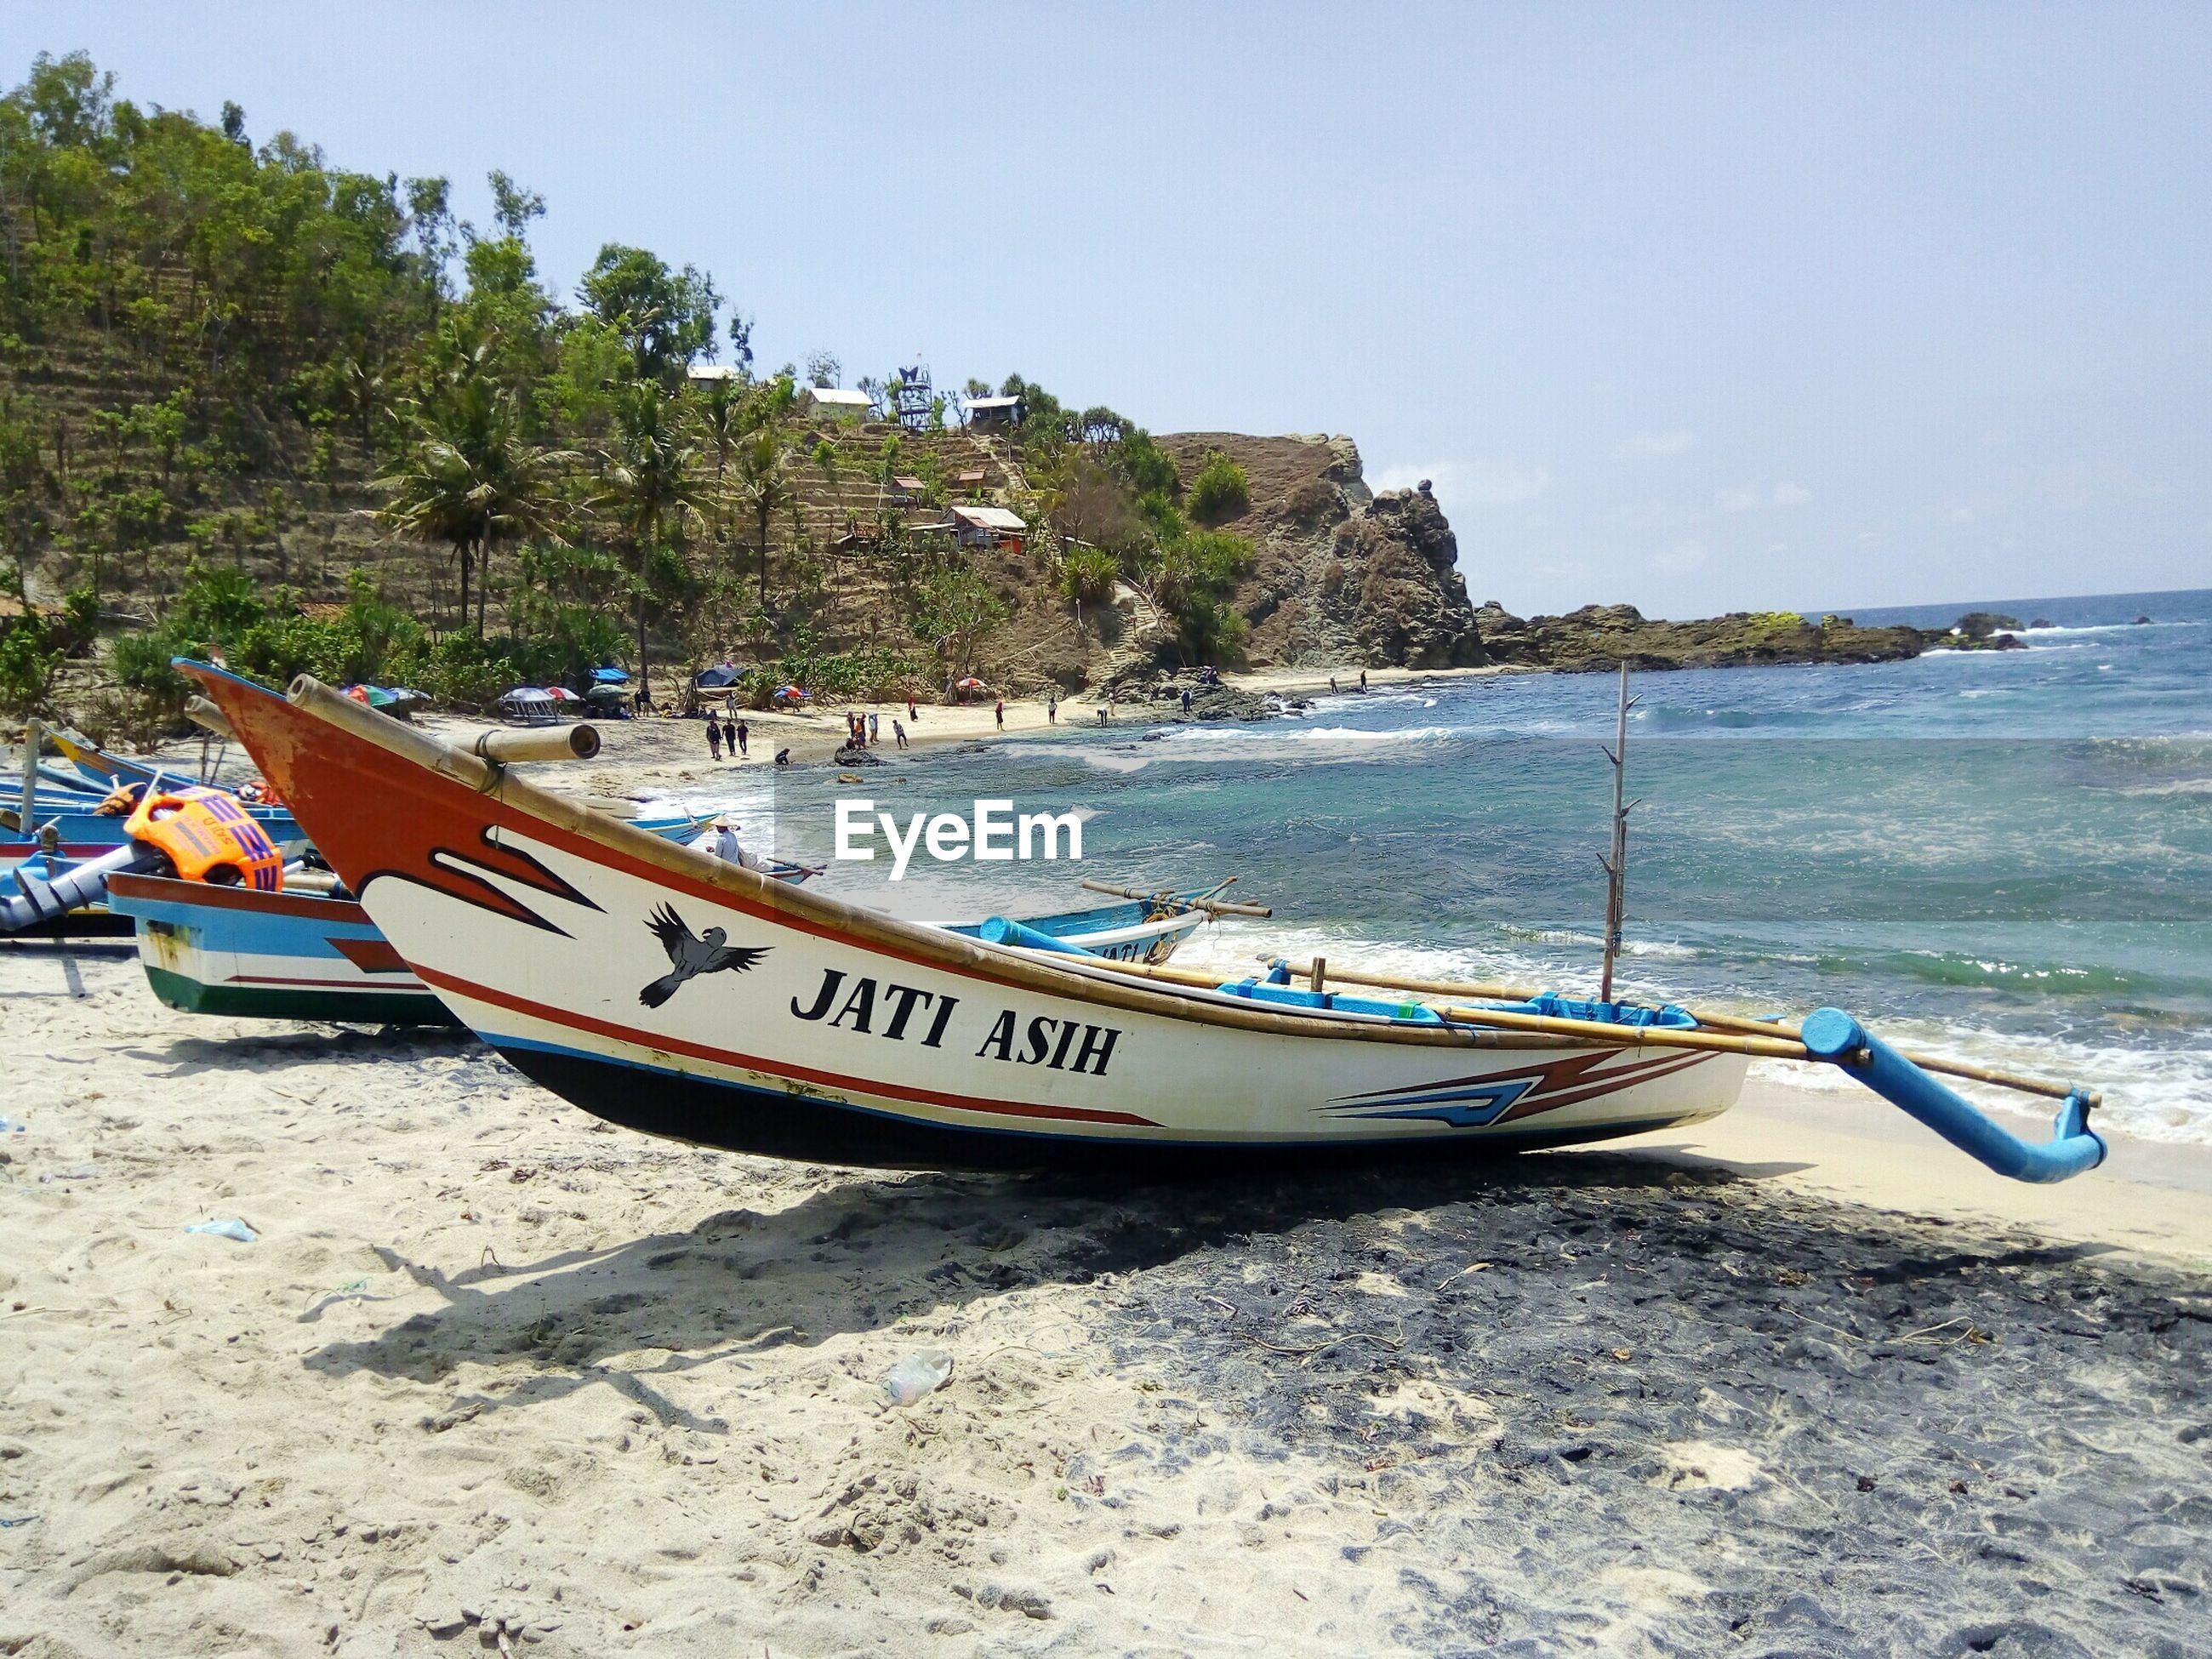 VIEW OF BOATS MOORED ON BEACH